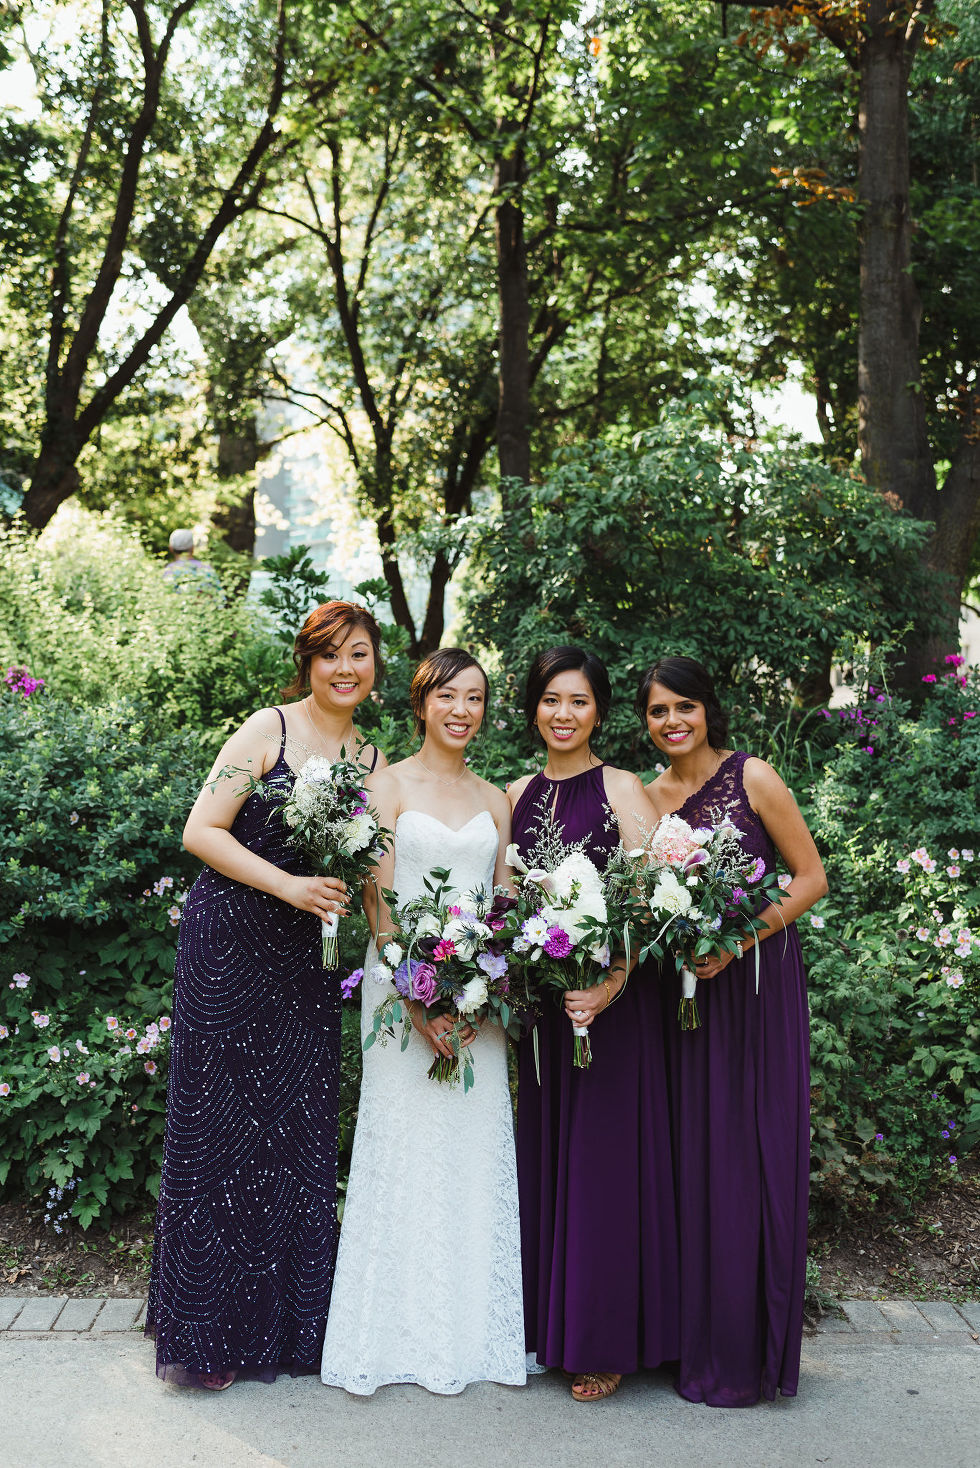 bride standing in the park with her 3 bridesmaids in purple dresses before her Parisian inspired wedding at La Maquette in Toronto Ontario